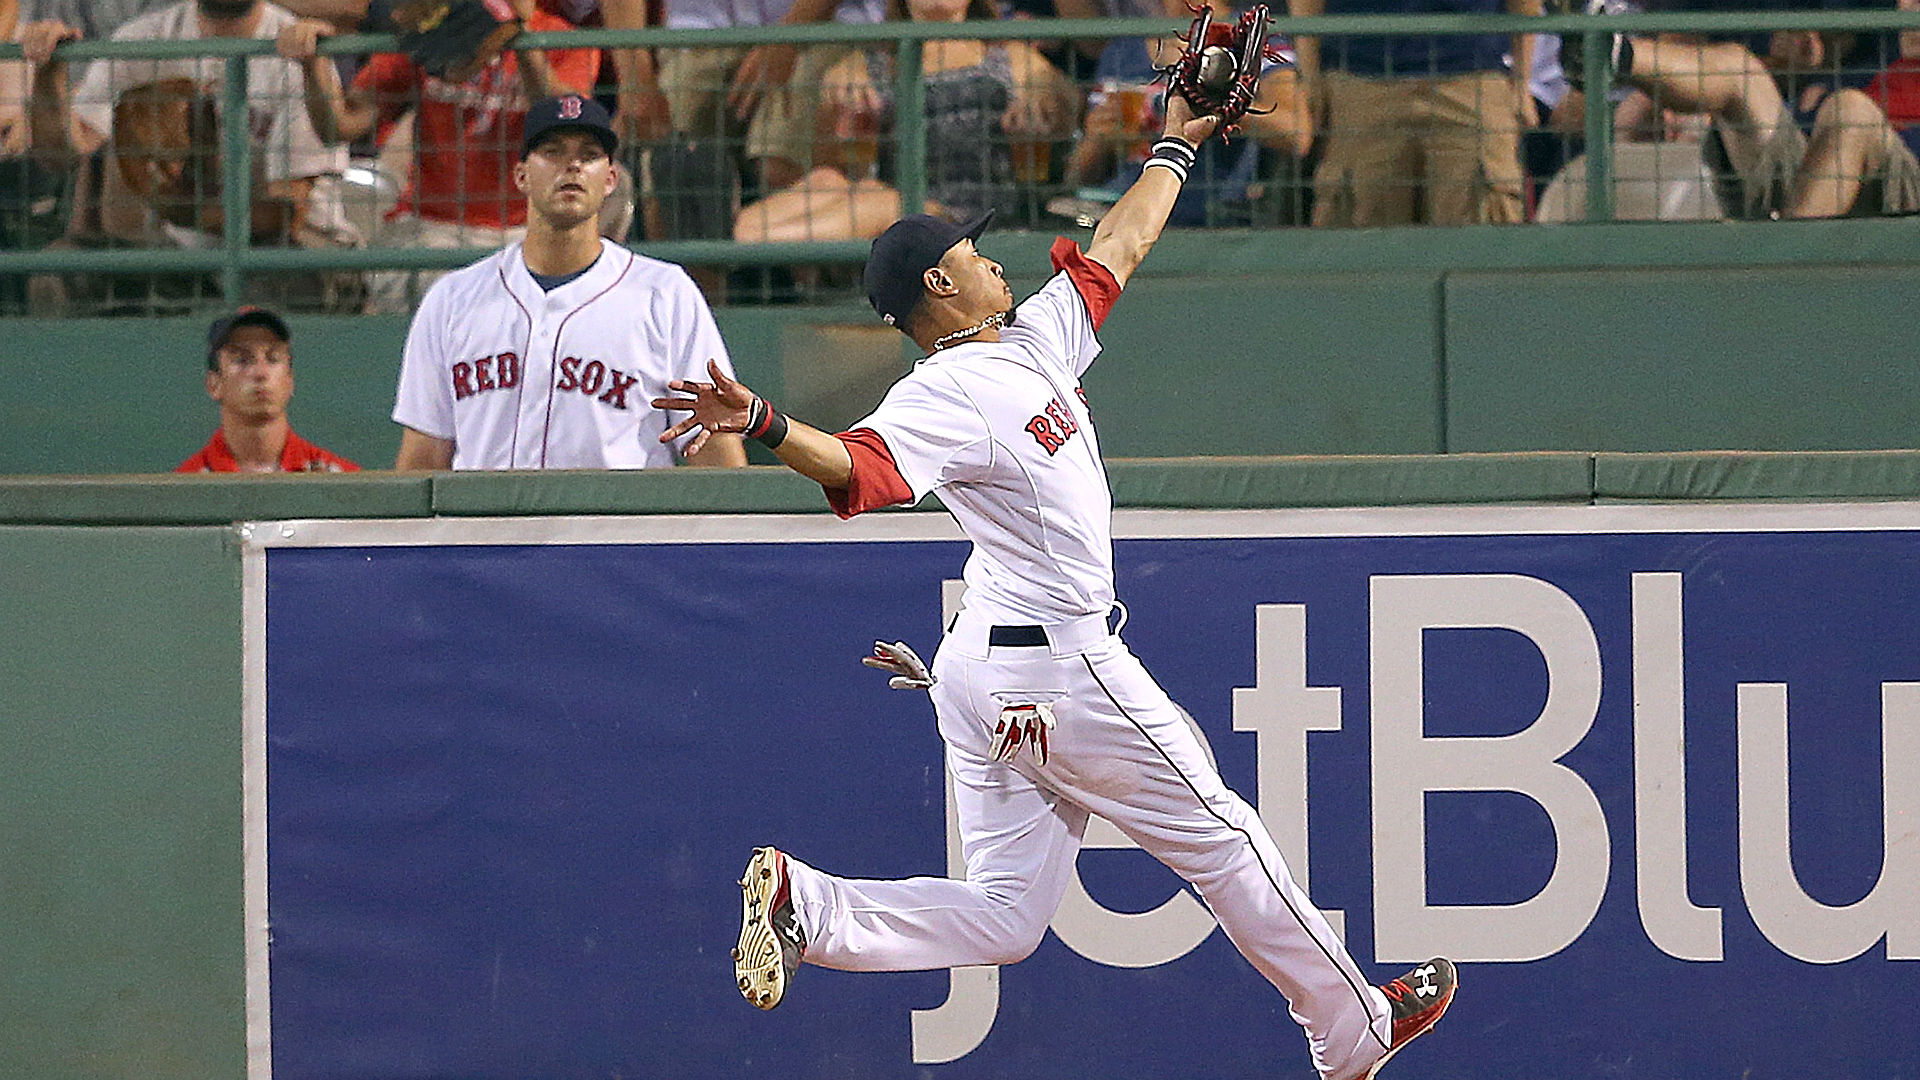 Mookie Betts suffers similar fate as NFL WR when ground jars ball loose